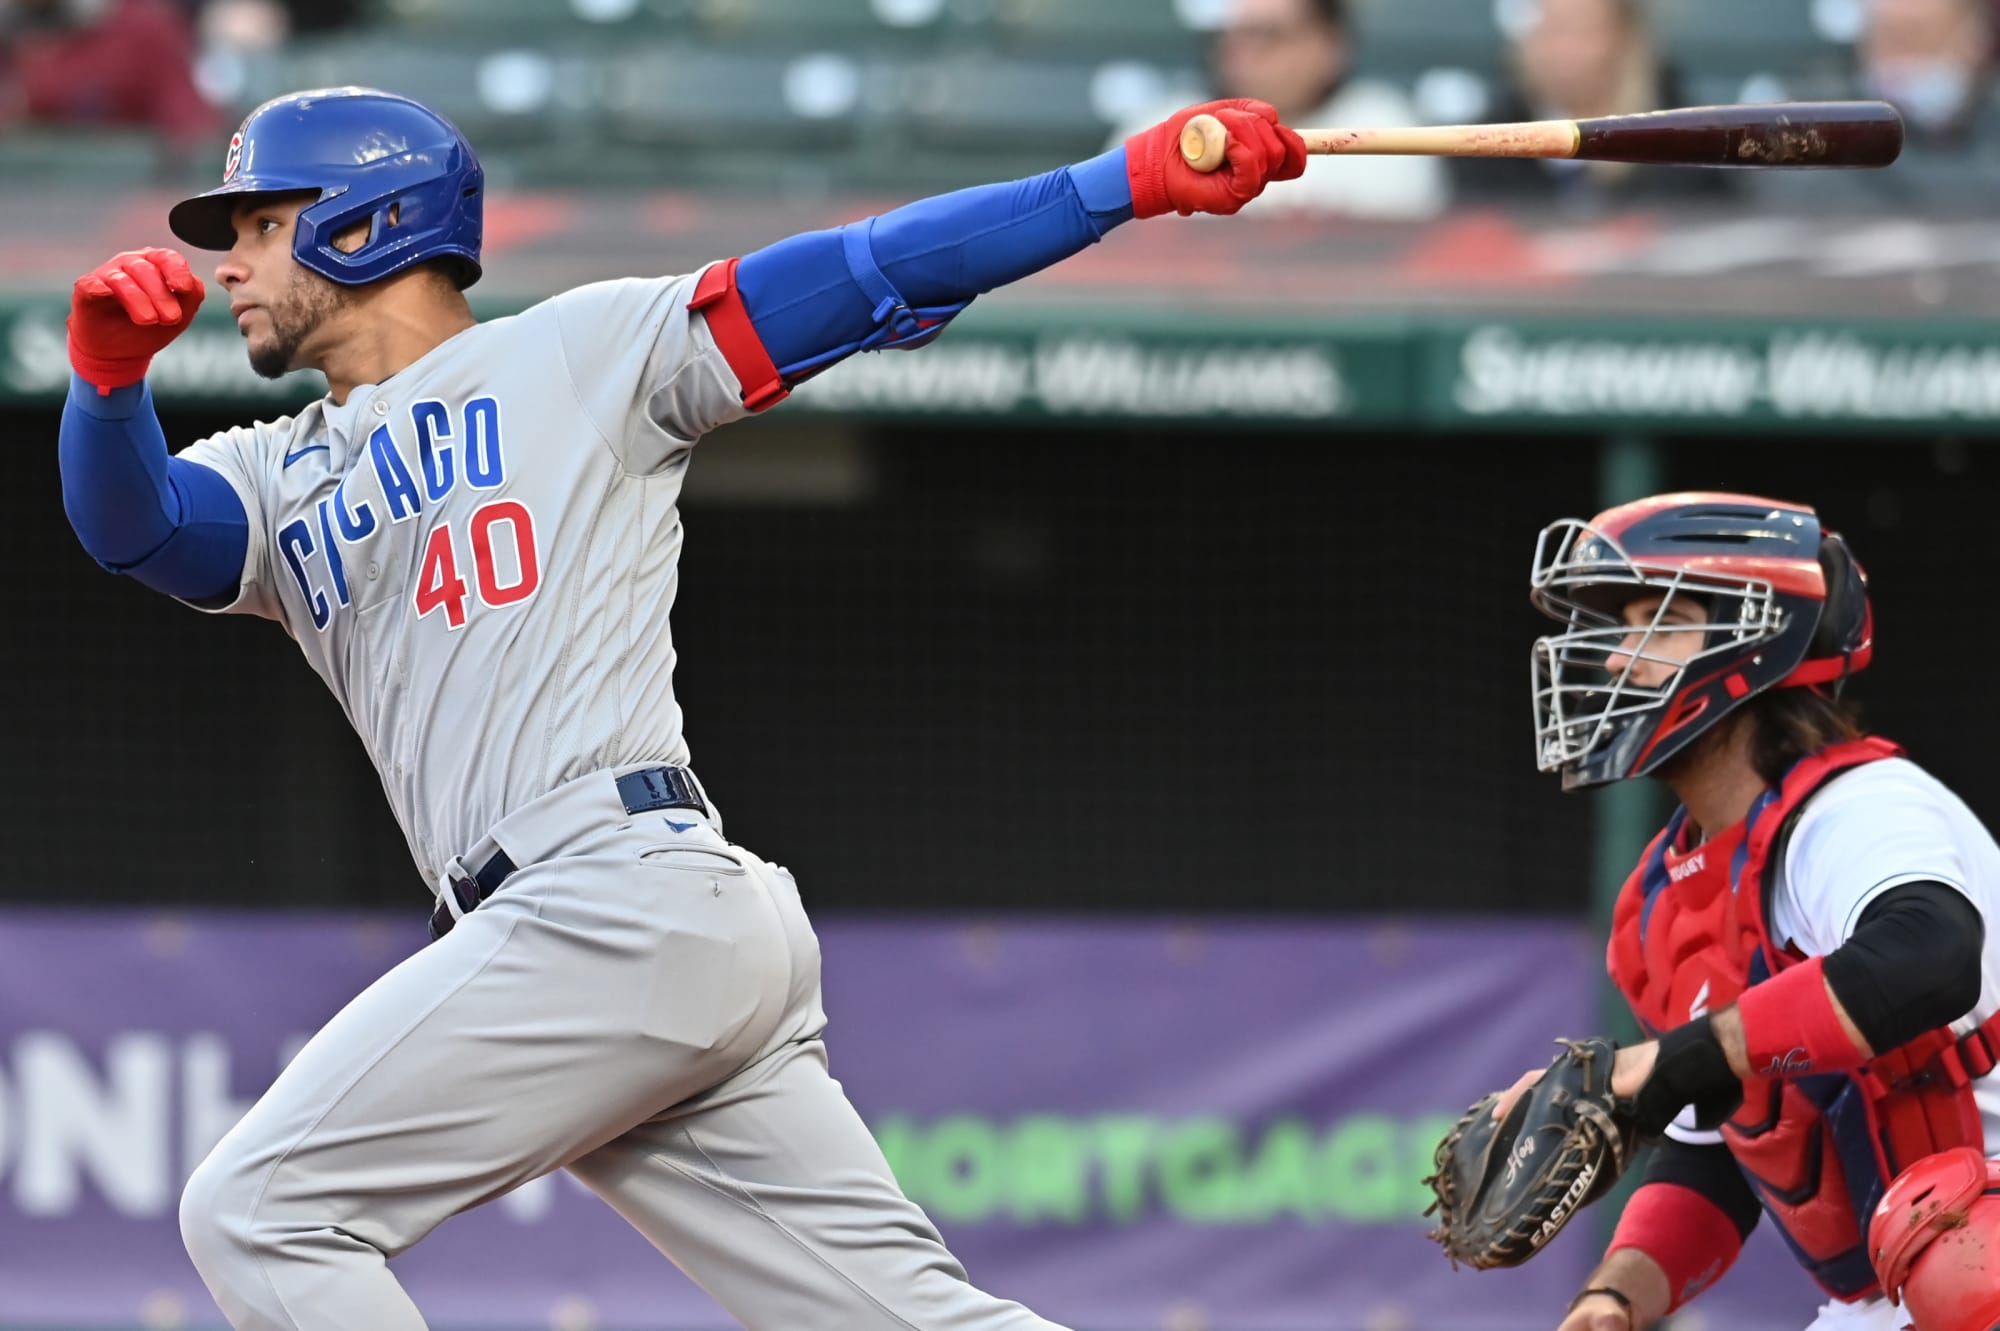 Chicago Cubs: Five key takeaways from series with Indians